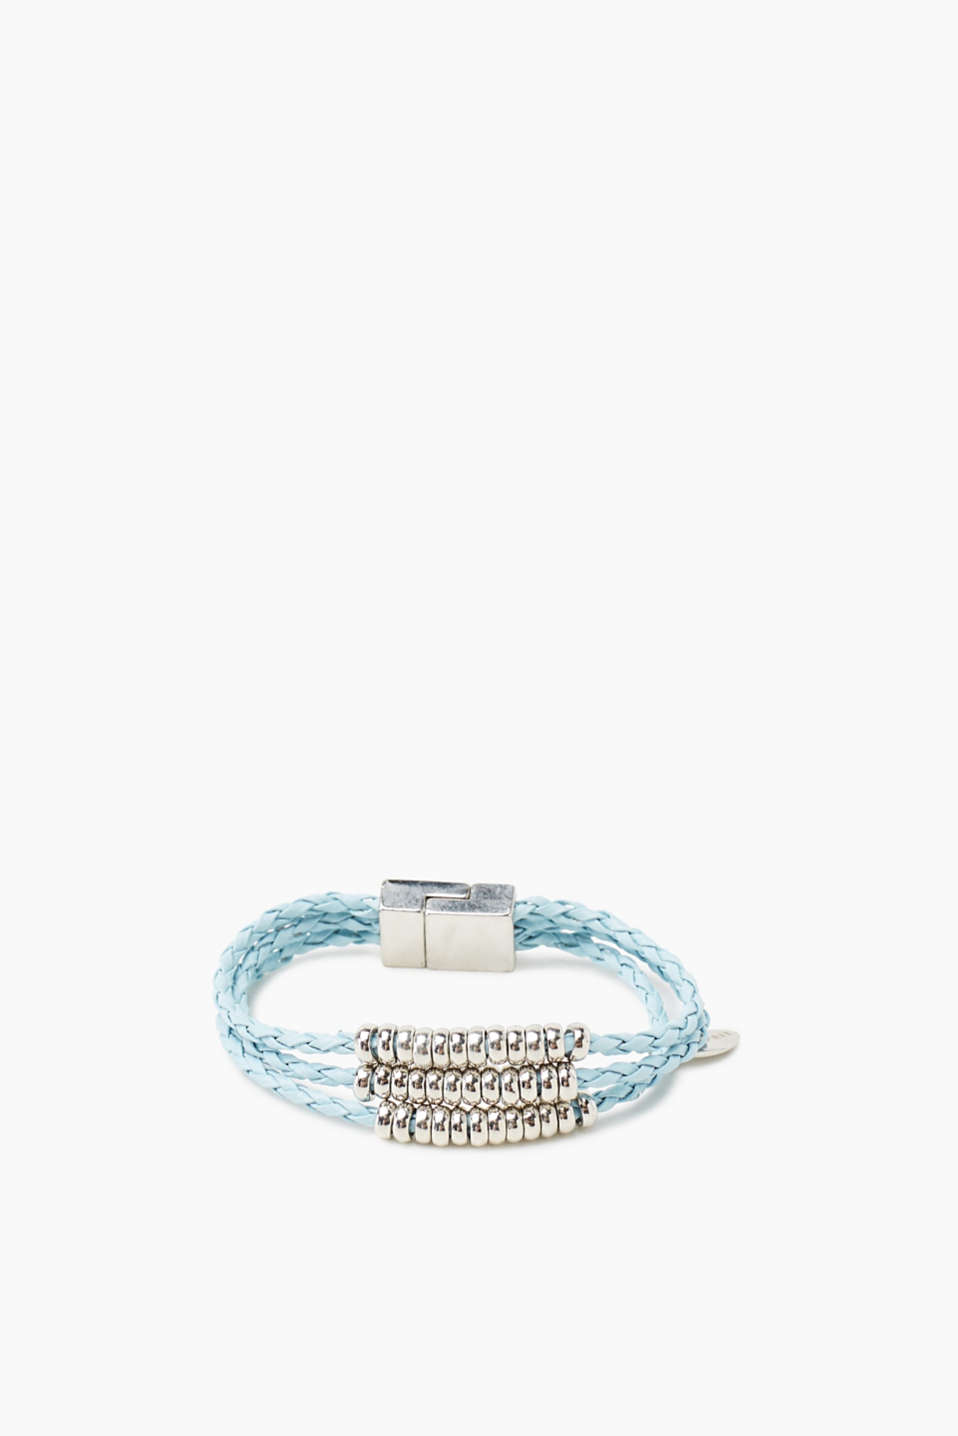 Three-strand braided bracelet with a magnetic clasp